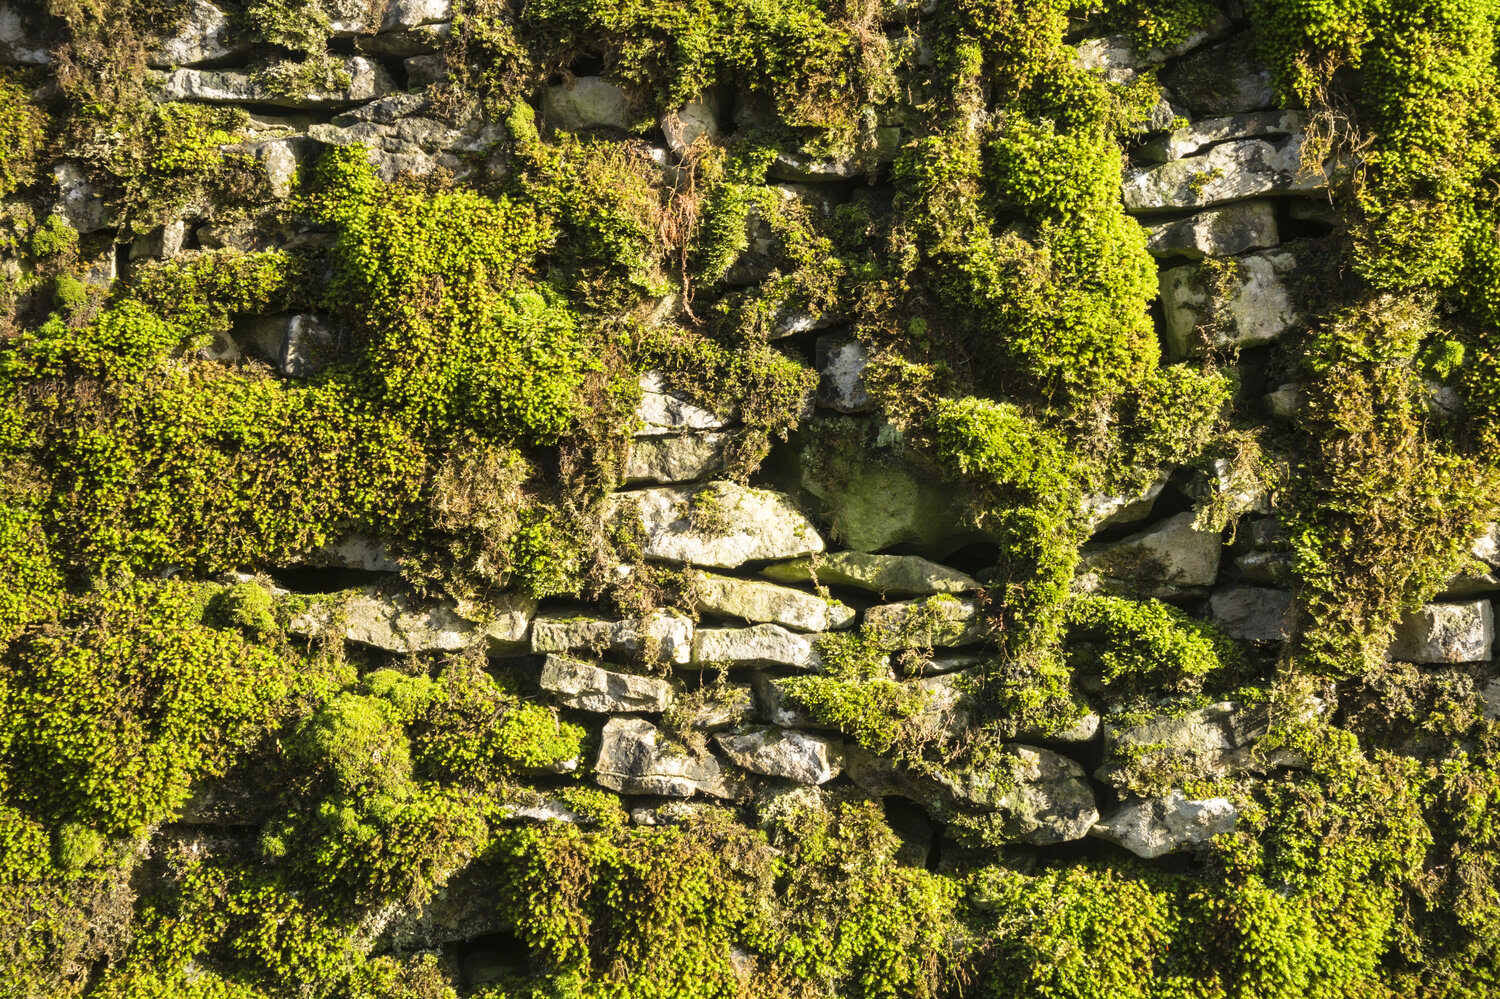 Selecting A Green Wall For Your Residential Or Commercial Project